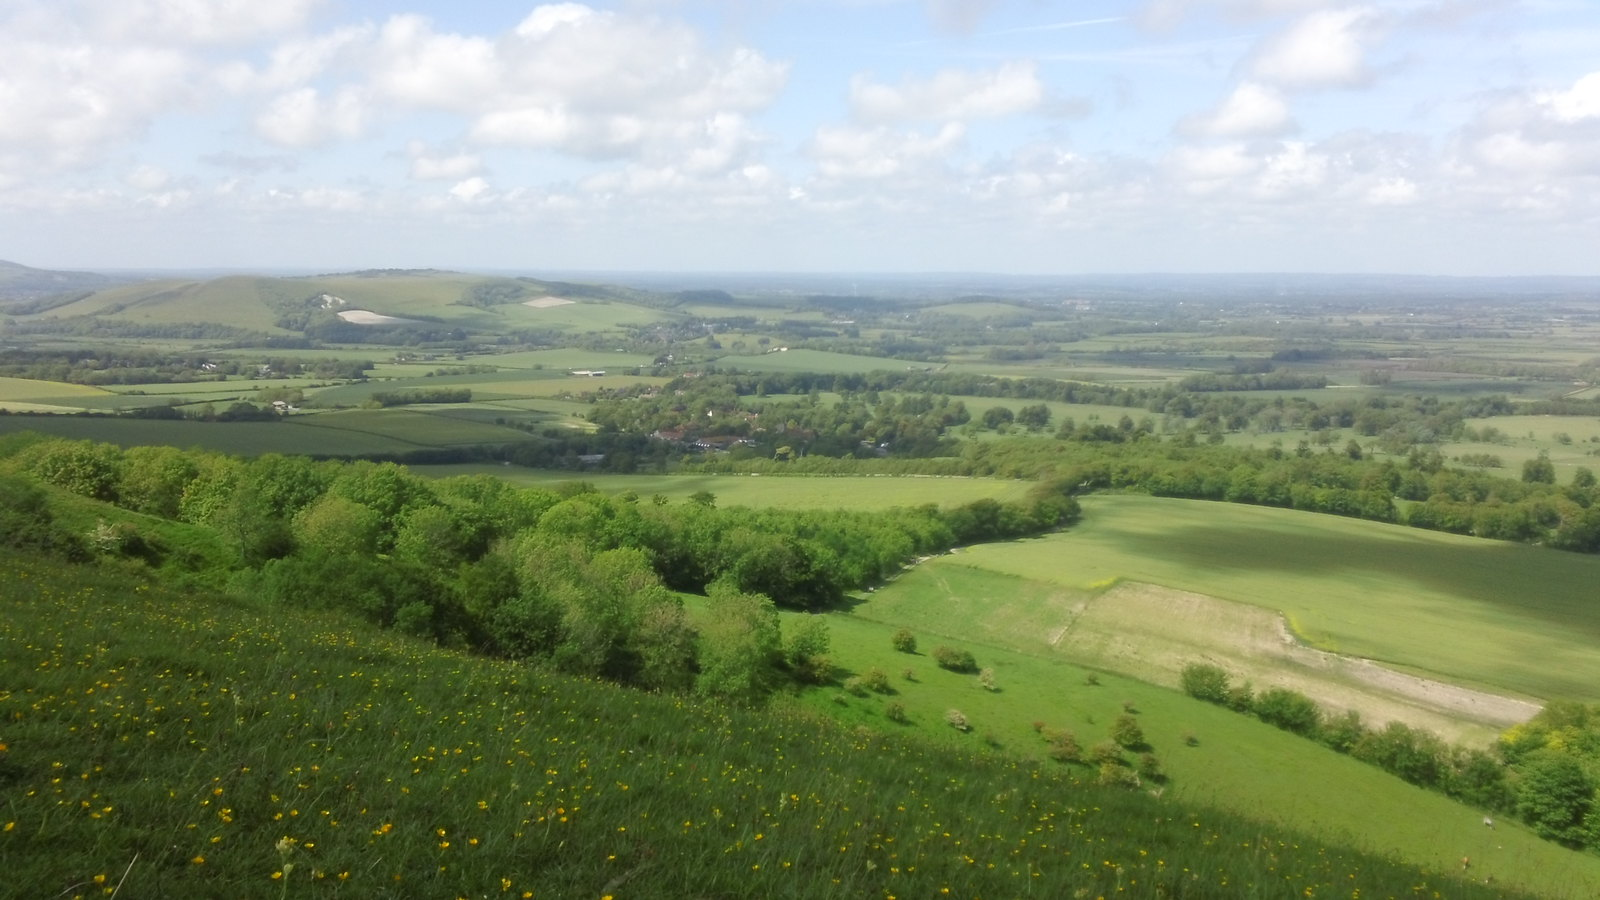 Sussex vista from track leading up to South Downs Way from Firle.